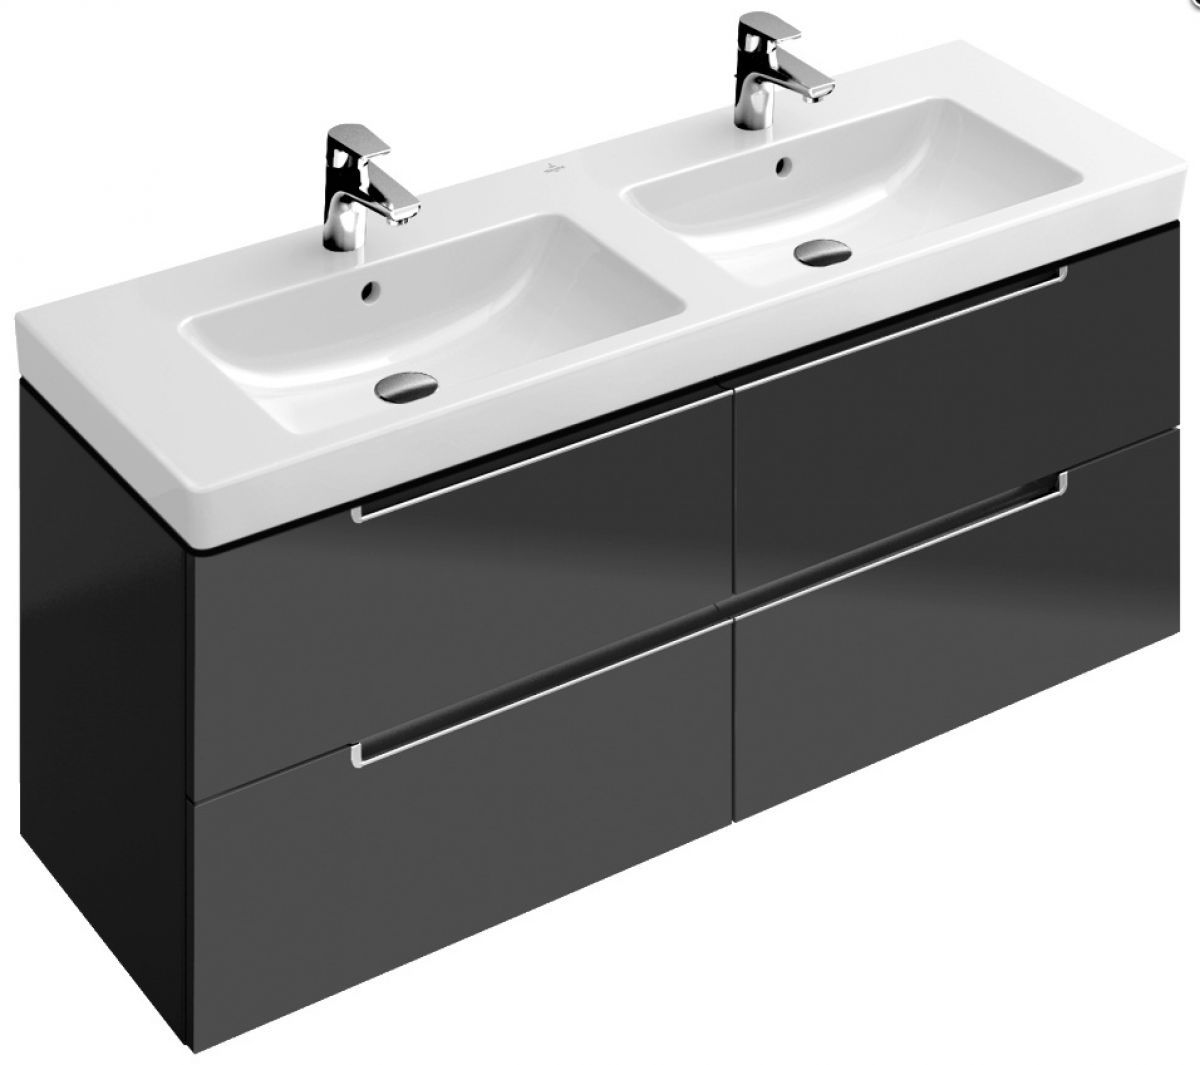 Doppelwaschtisch Villeroy Boch Subway 2.0 Villeroy And Boch Subway 2 Double Washbasin Vanity Unit In